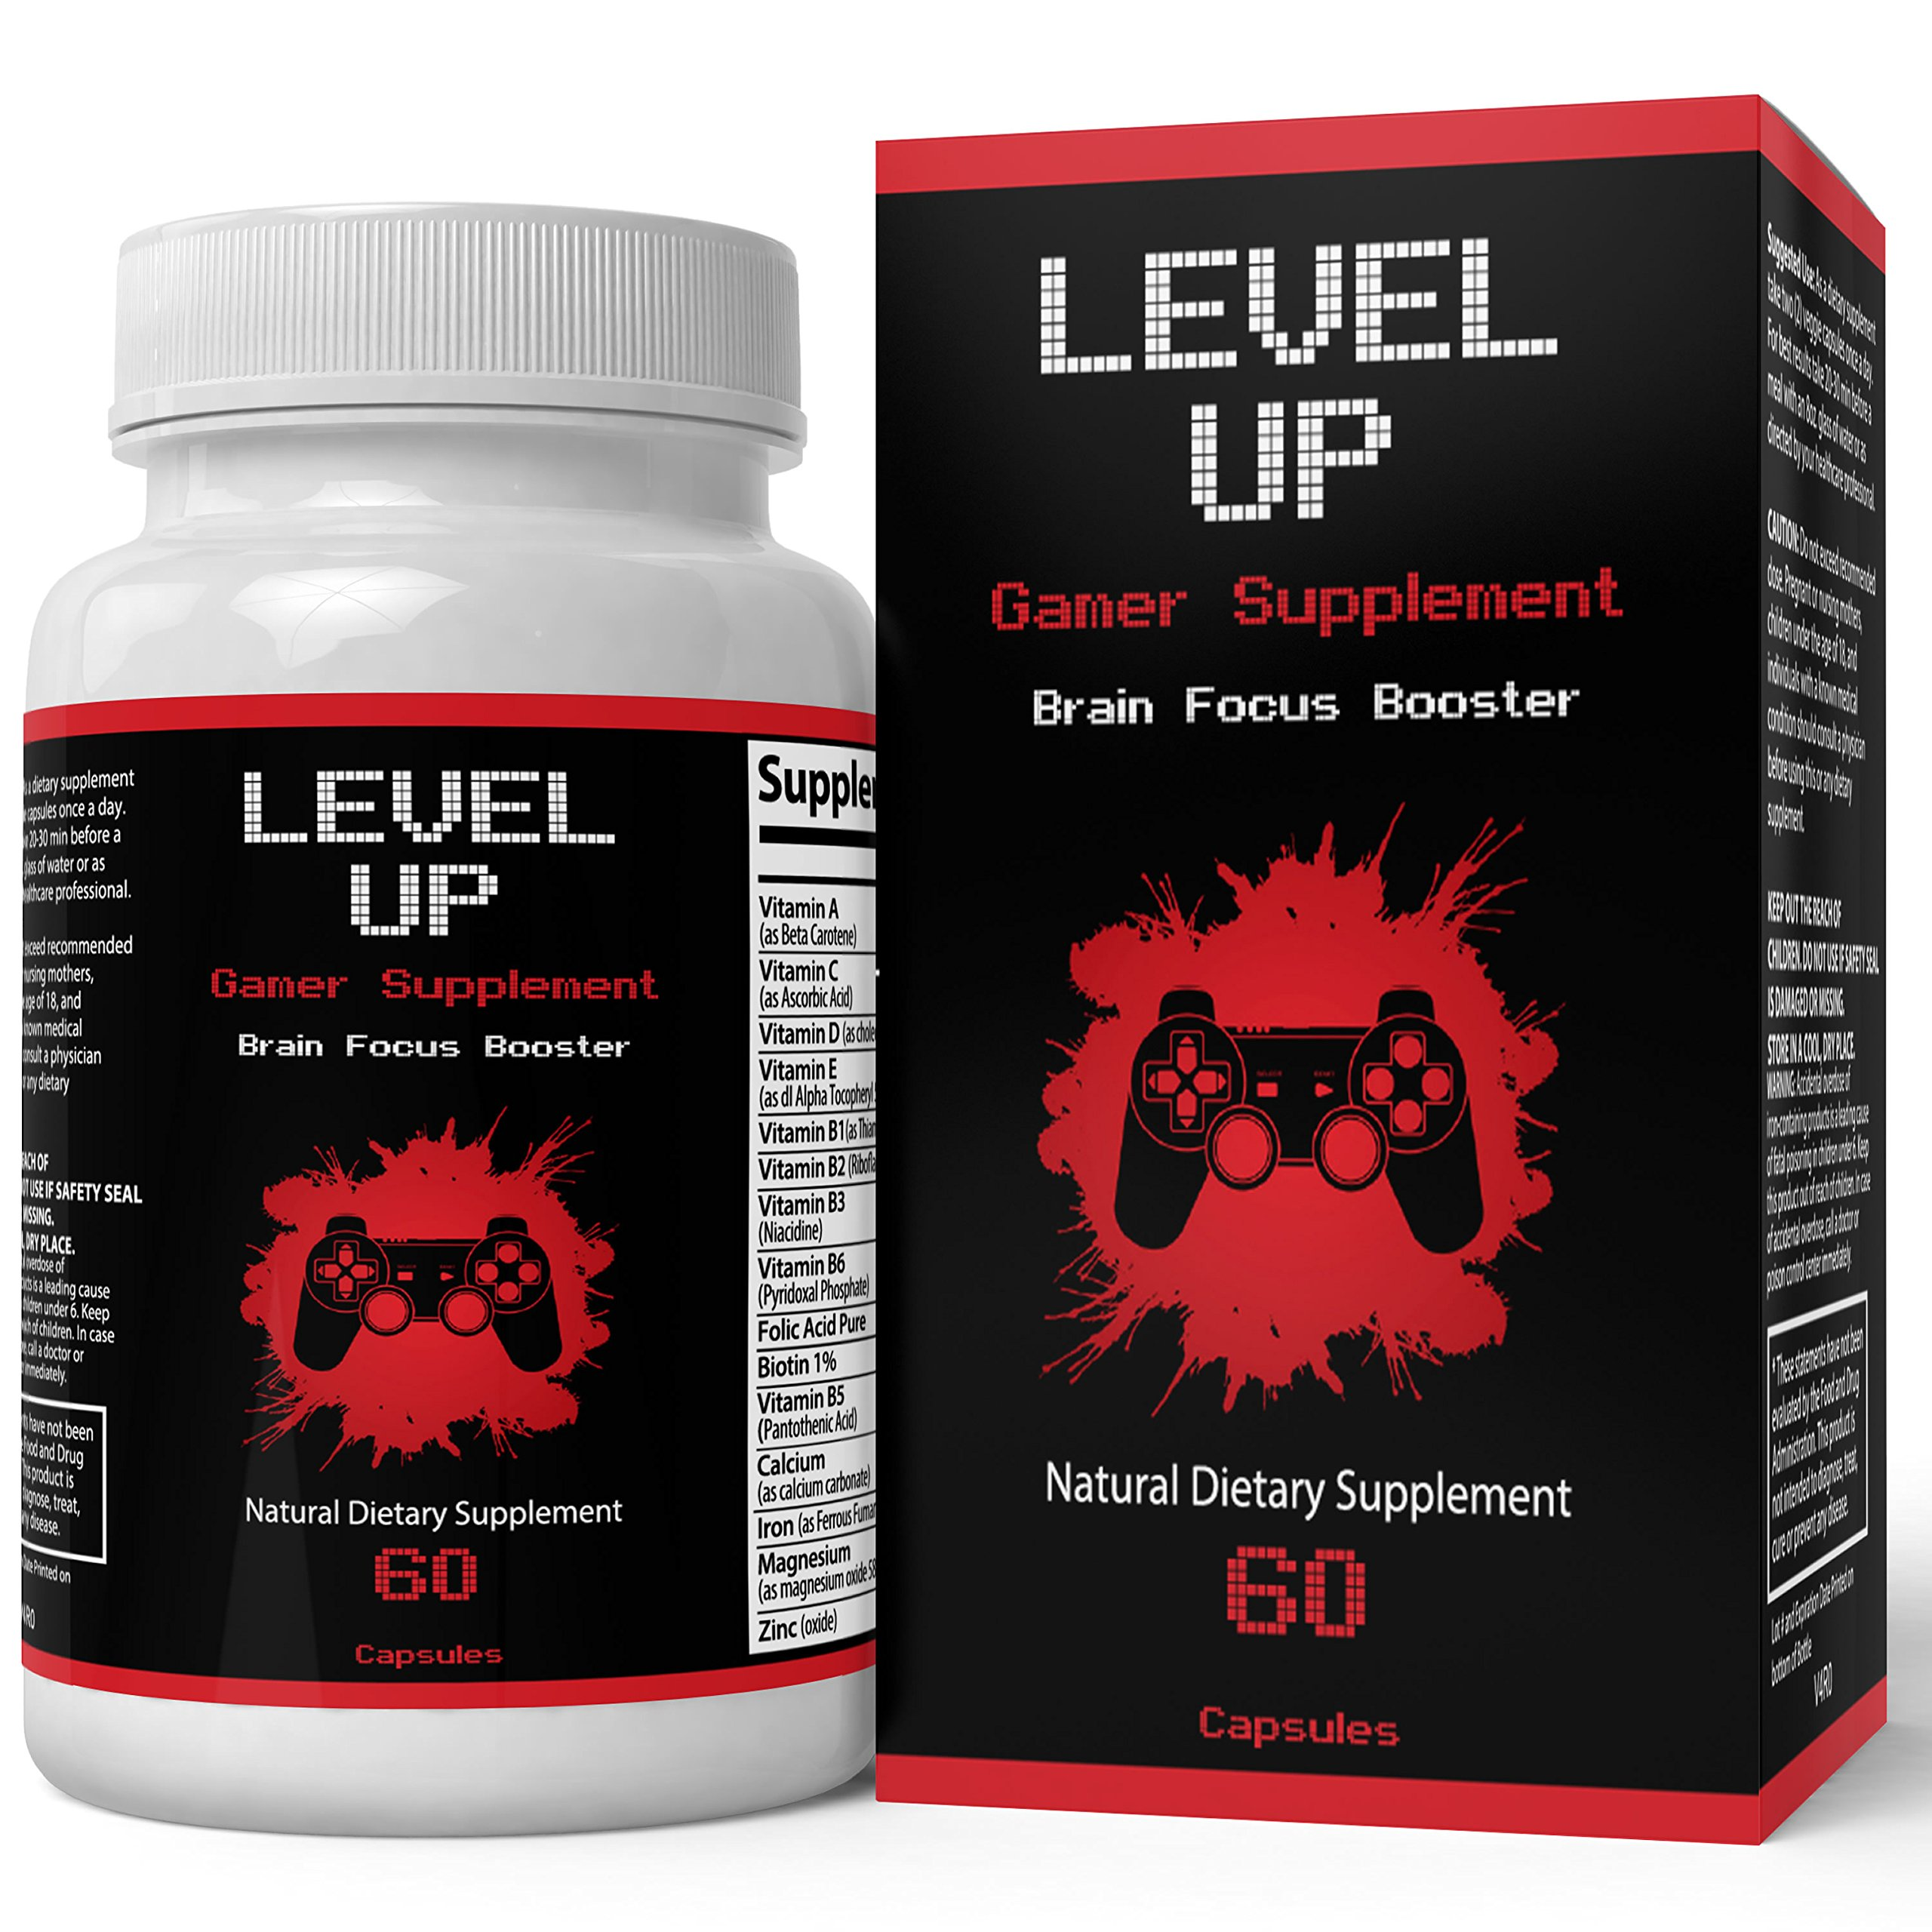 Mod Gaming Supplement | Level Up - Upgraded Brain Focus Booster | Potent Nootropic for Mental Performance, Clarity and Cognitive Activity | 60 Capsules – 1 Month Supply (60 Count)